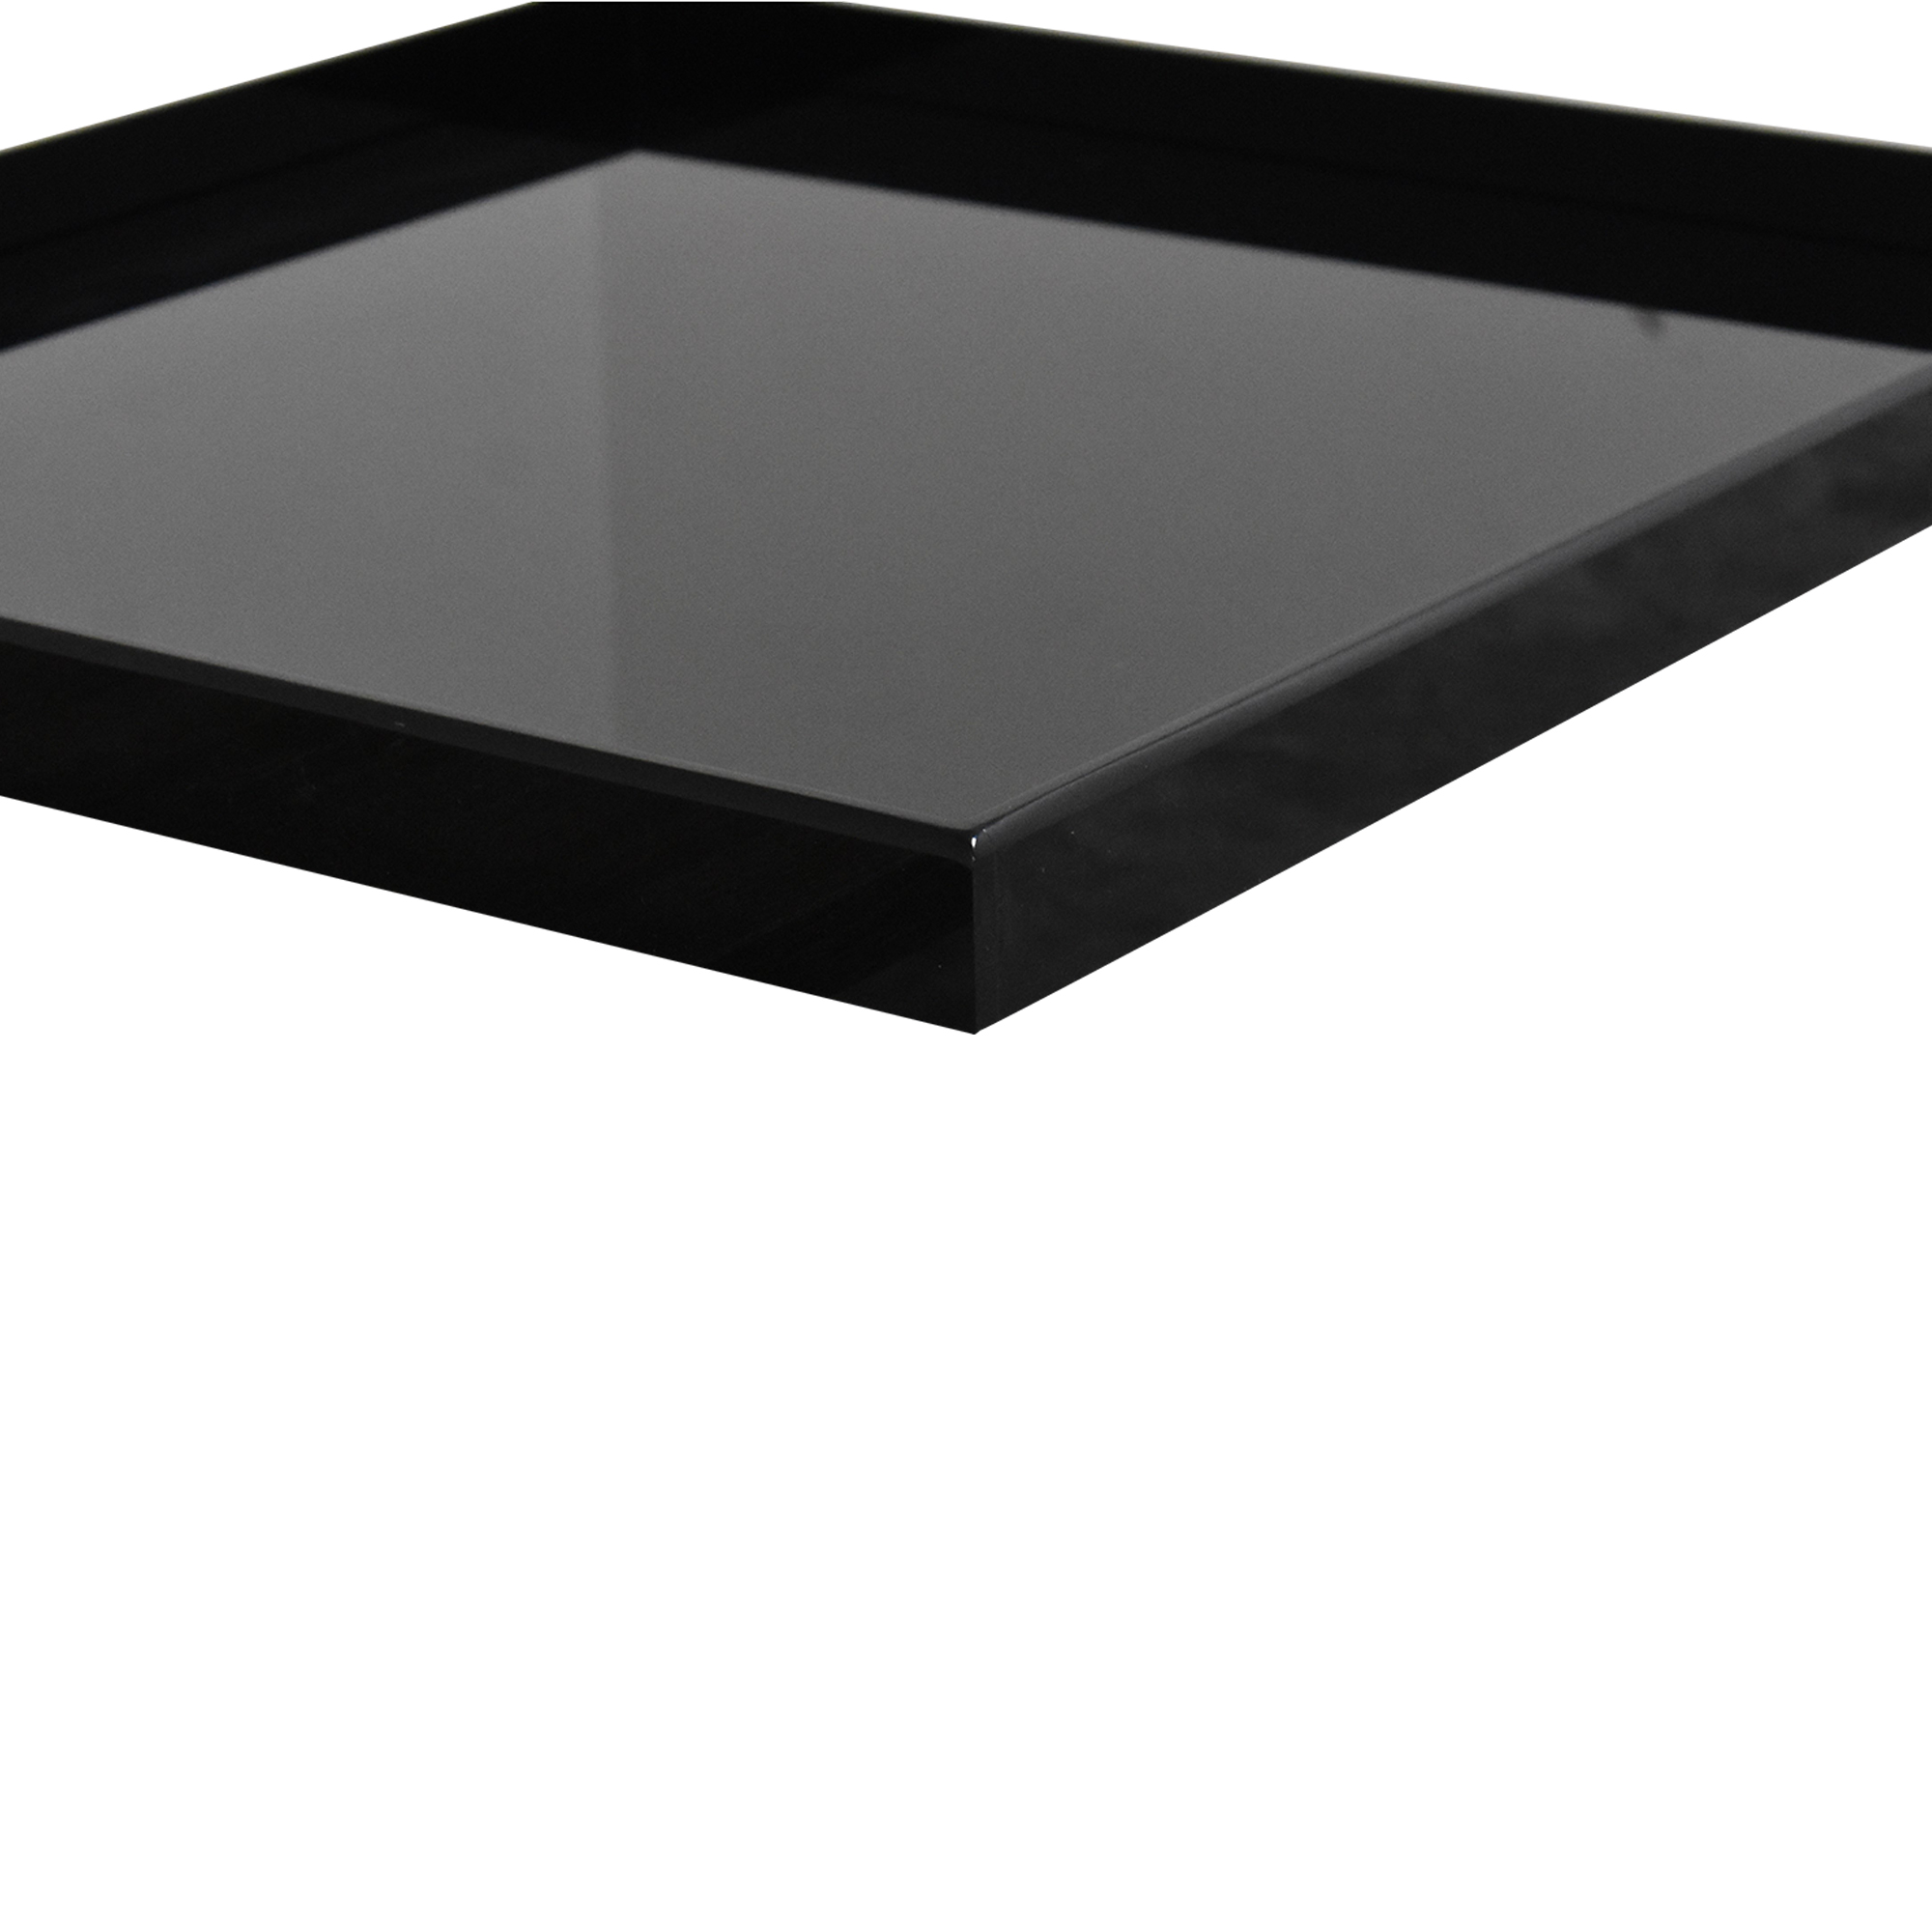 Alexandra Von Furstenberg Alexandra Von Furstenberg XL Vanity Mirror Tray for sale